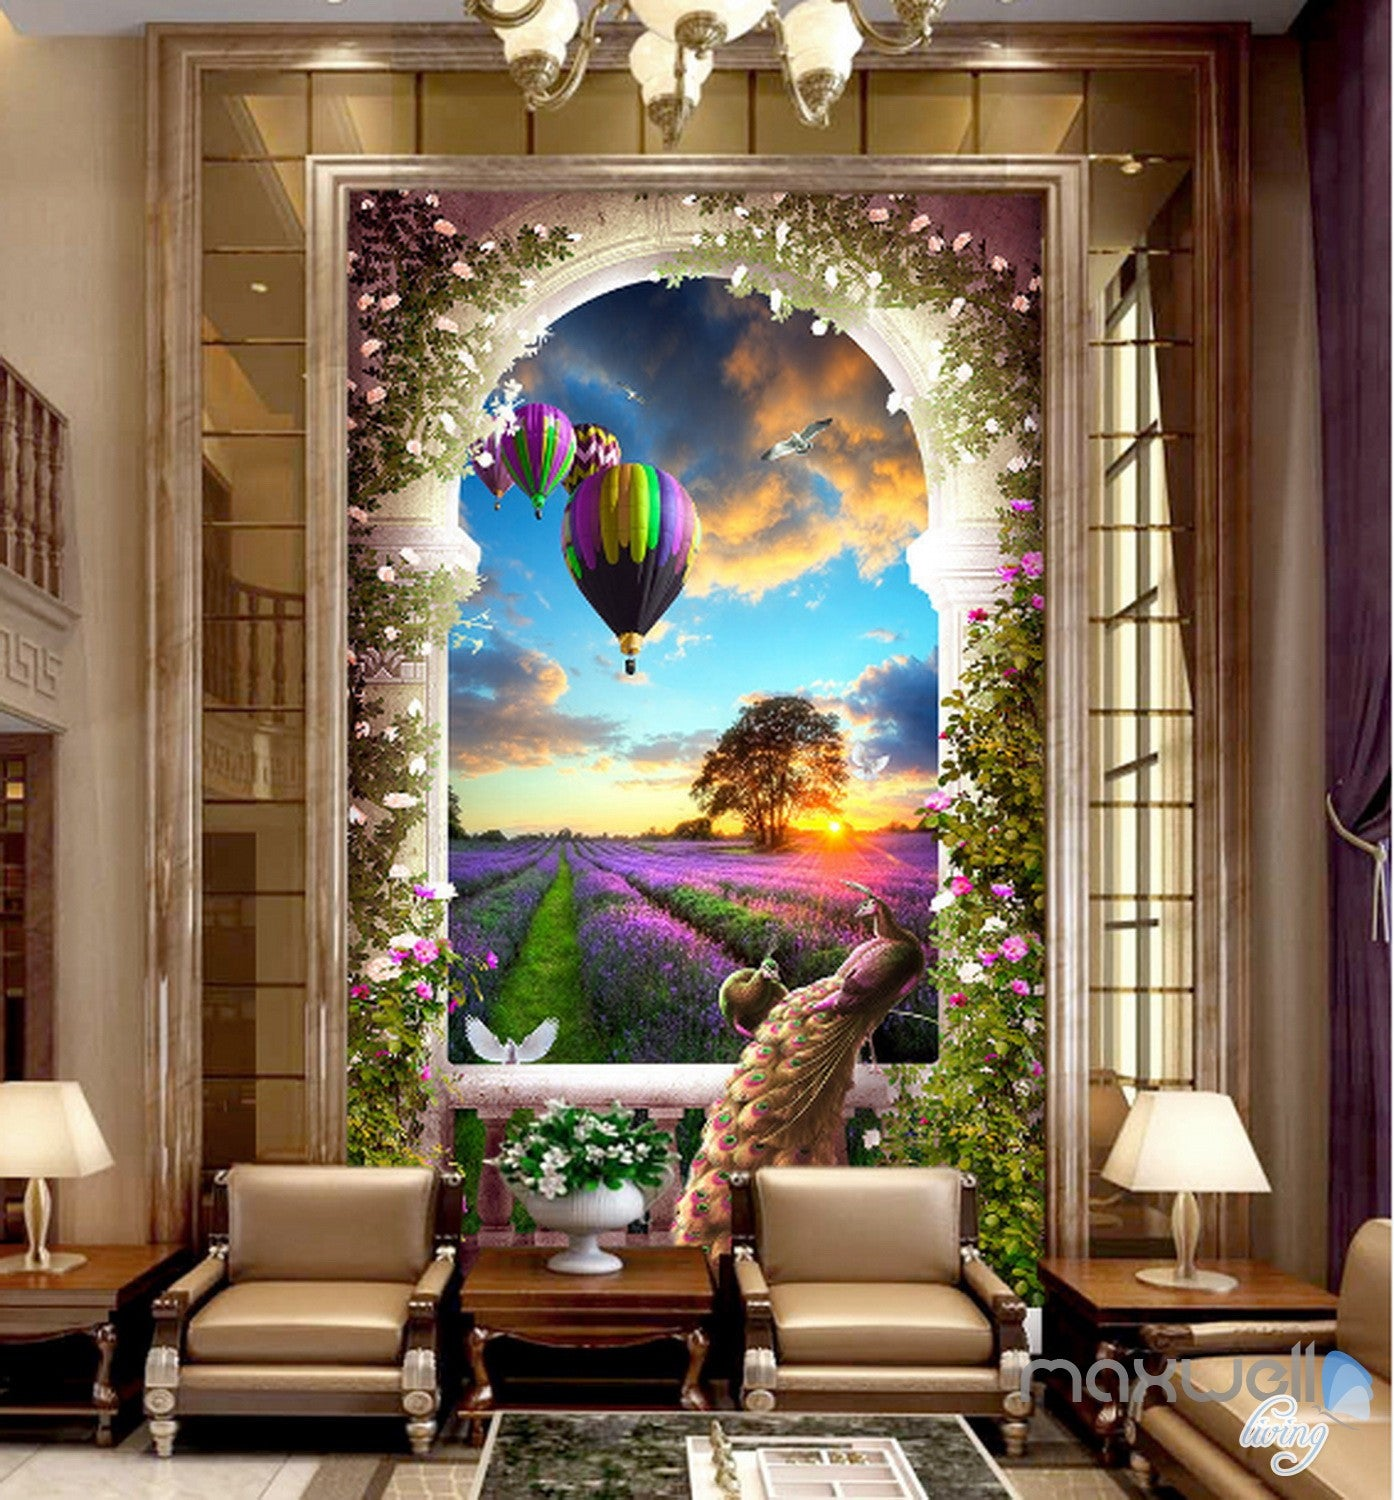 Wall Mural Decals 3d balcony peacock hot airbaloon lavender corridor entrance wall